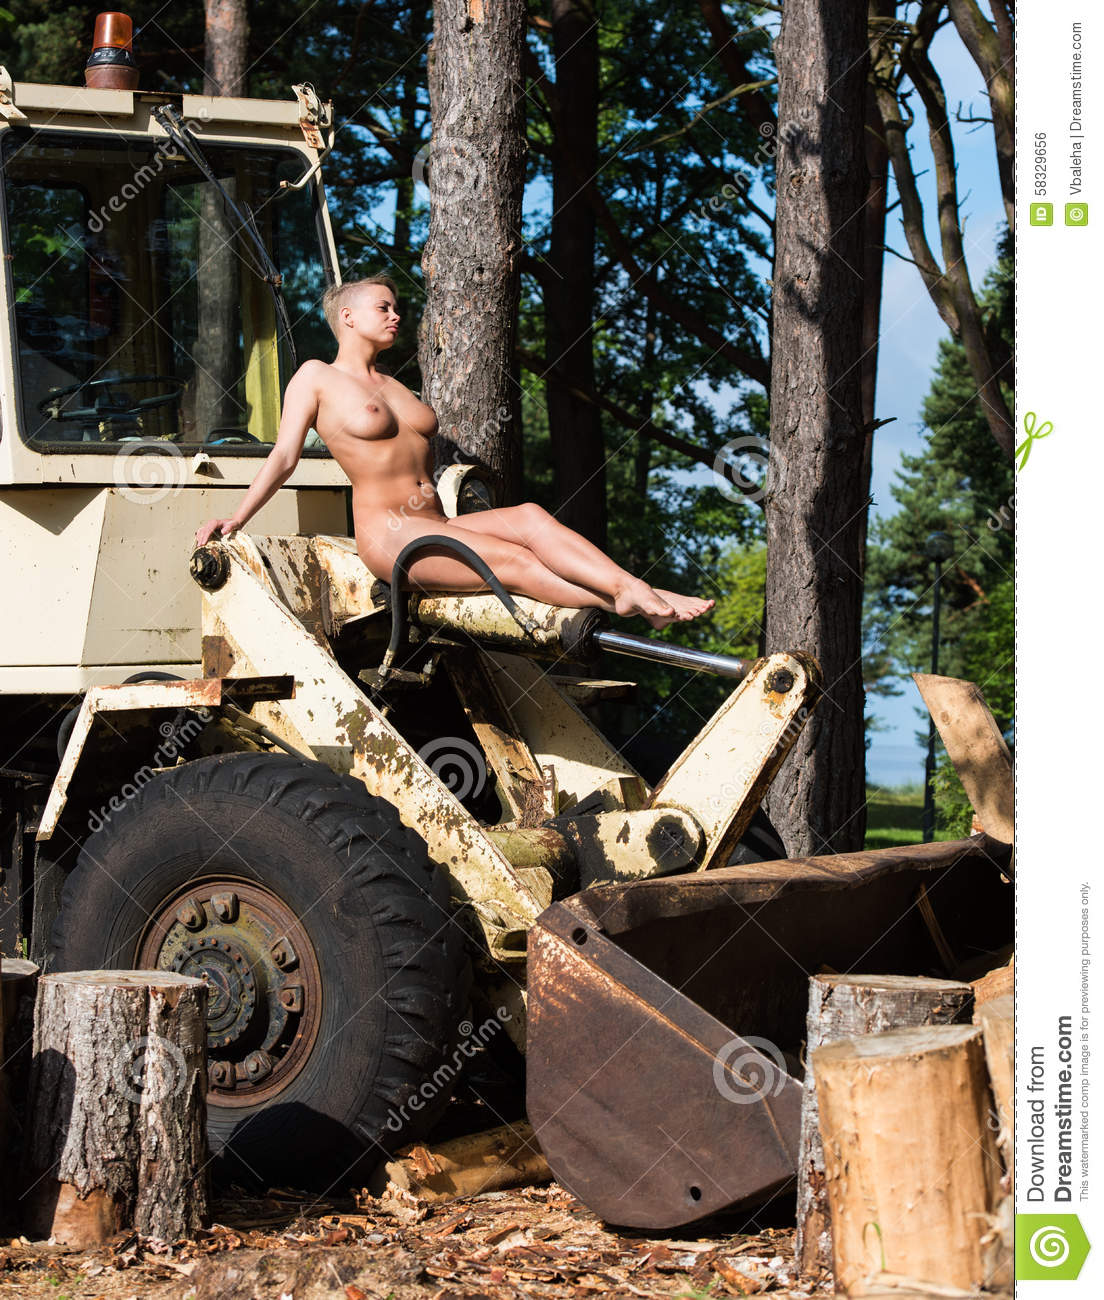 Naked Woman On Tractor 4